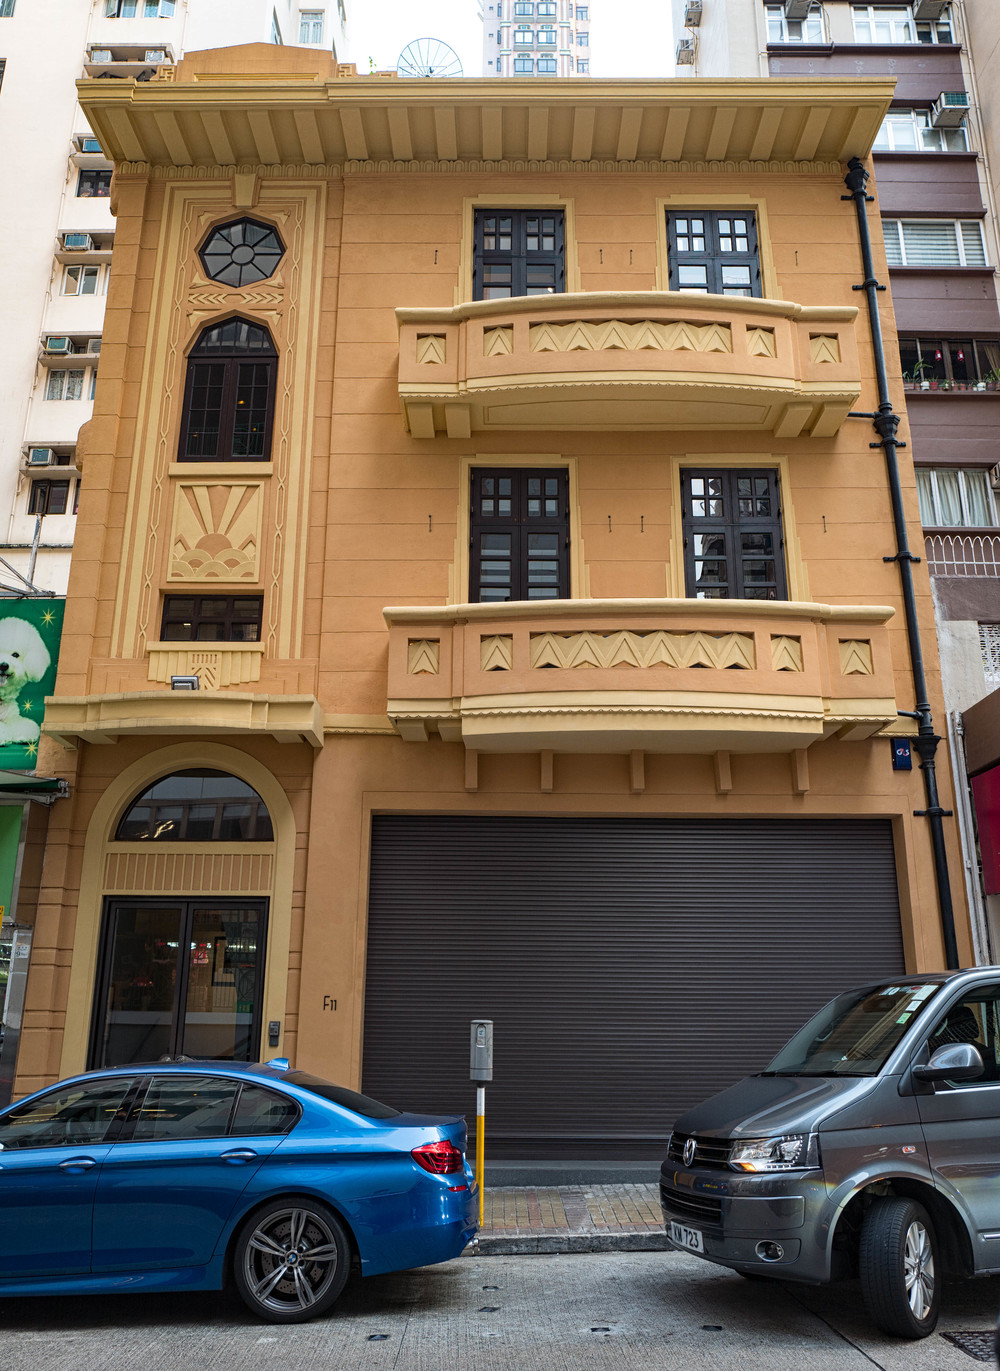 Designed by J.S.Gibson and built in 1934-35, No. 11 Yuk Sau Street has been lovingly restored and now houses the F11 Photographic Museum